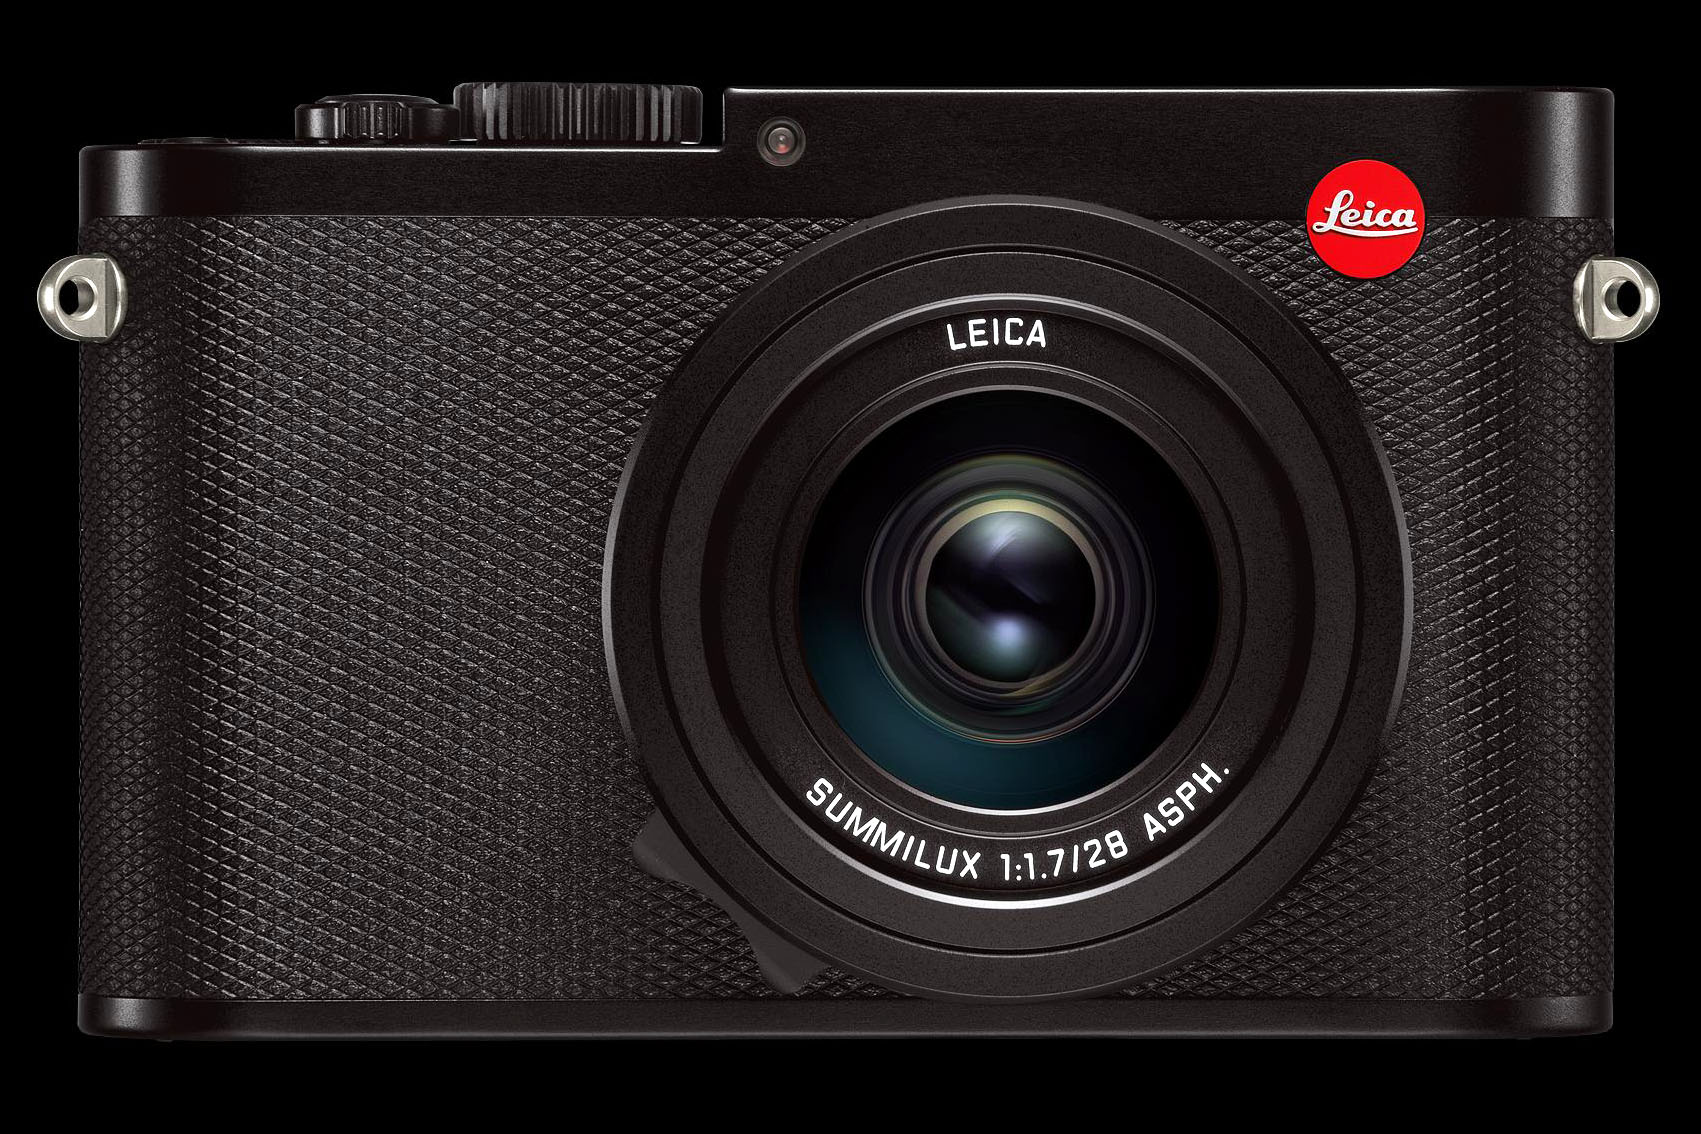 Leica Q Hands on Review